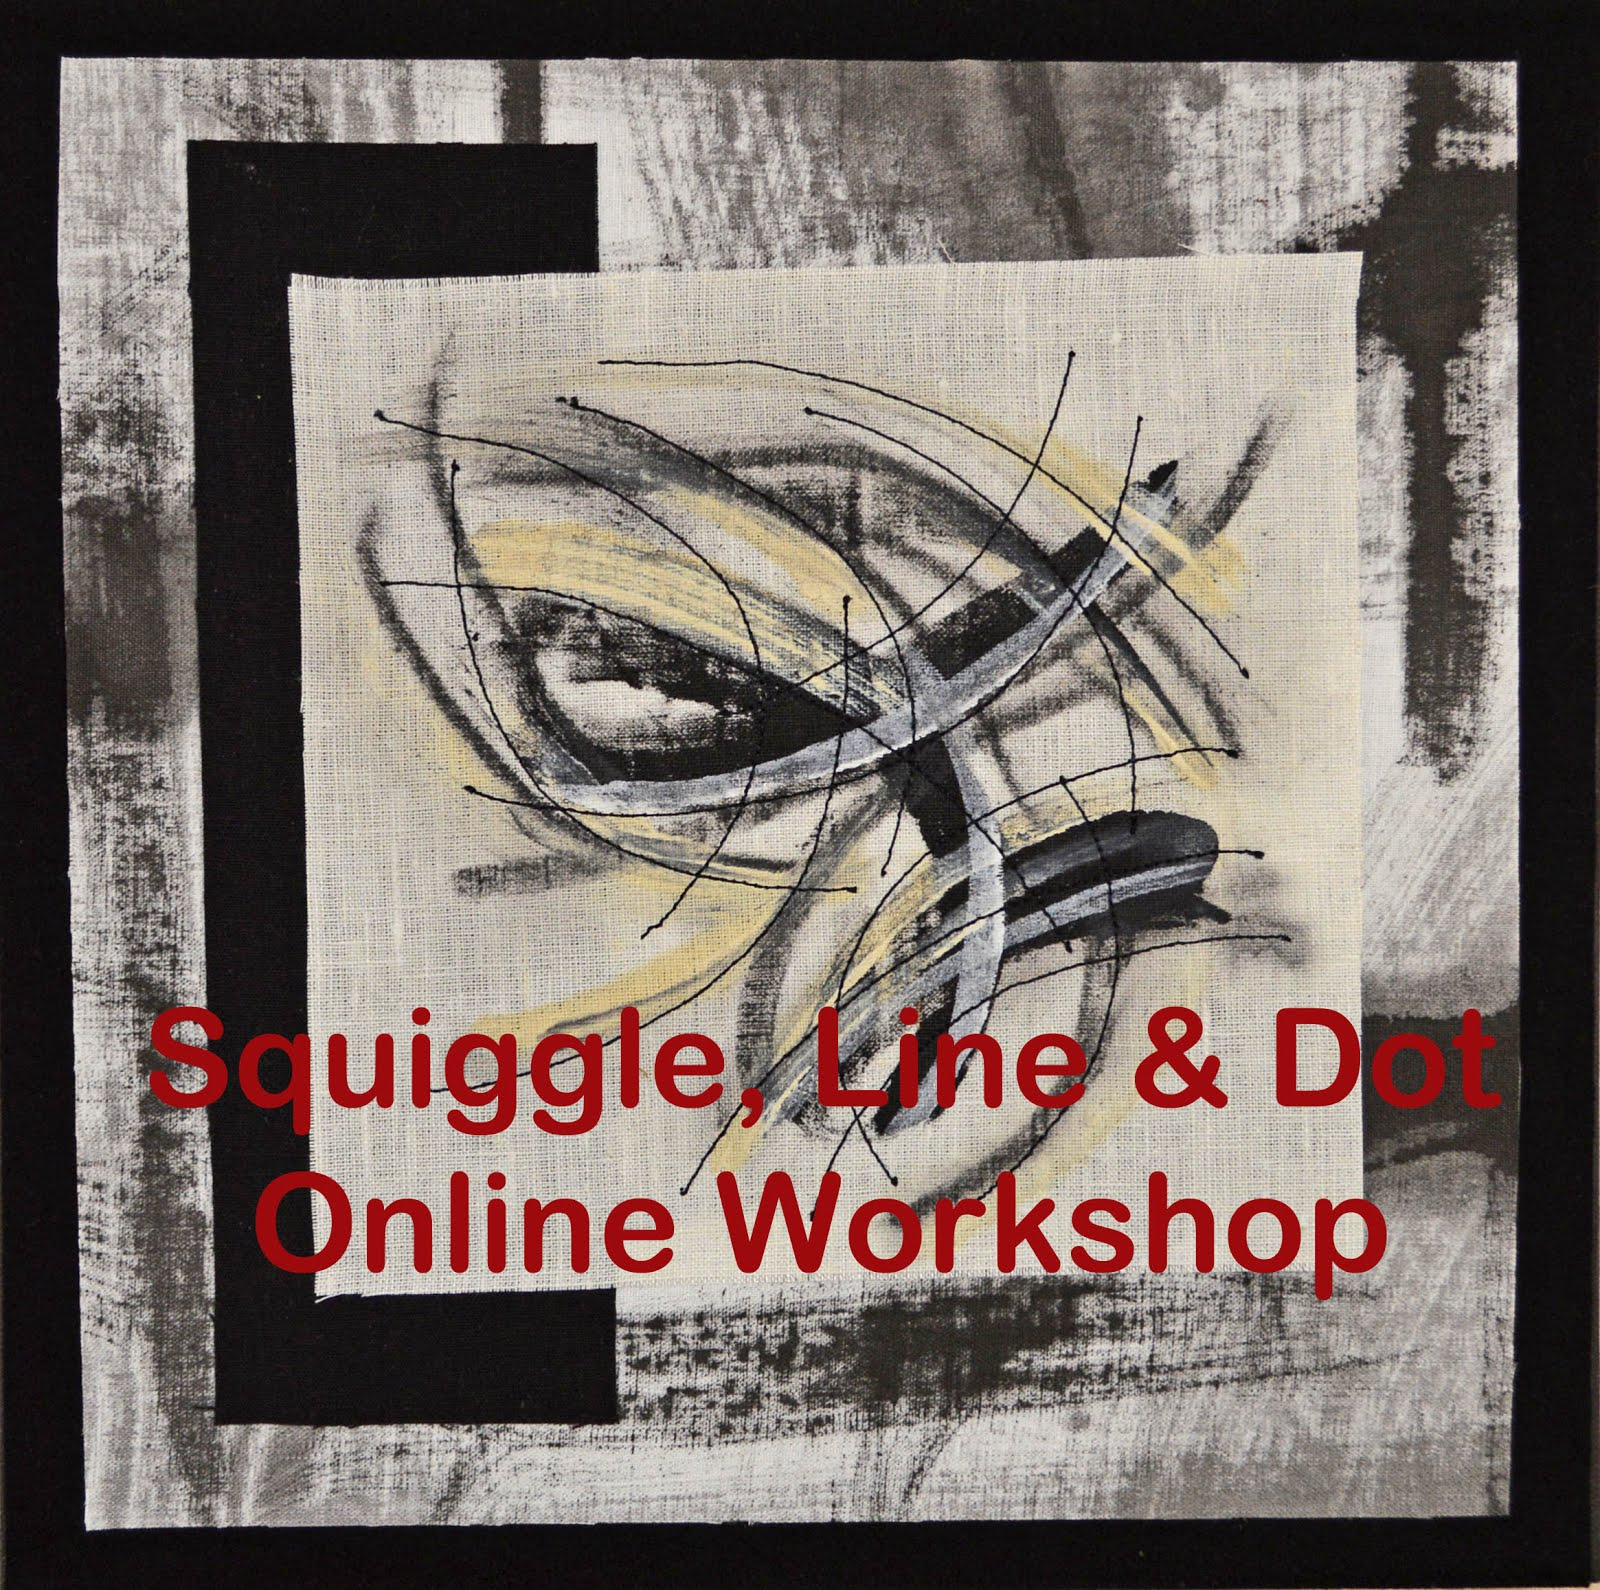 Squiggle, Line & Dot Online Workshop